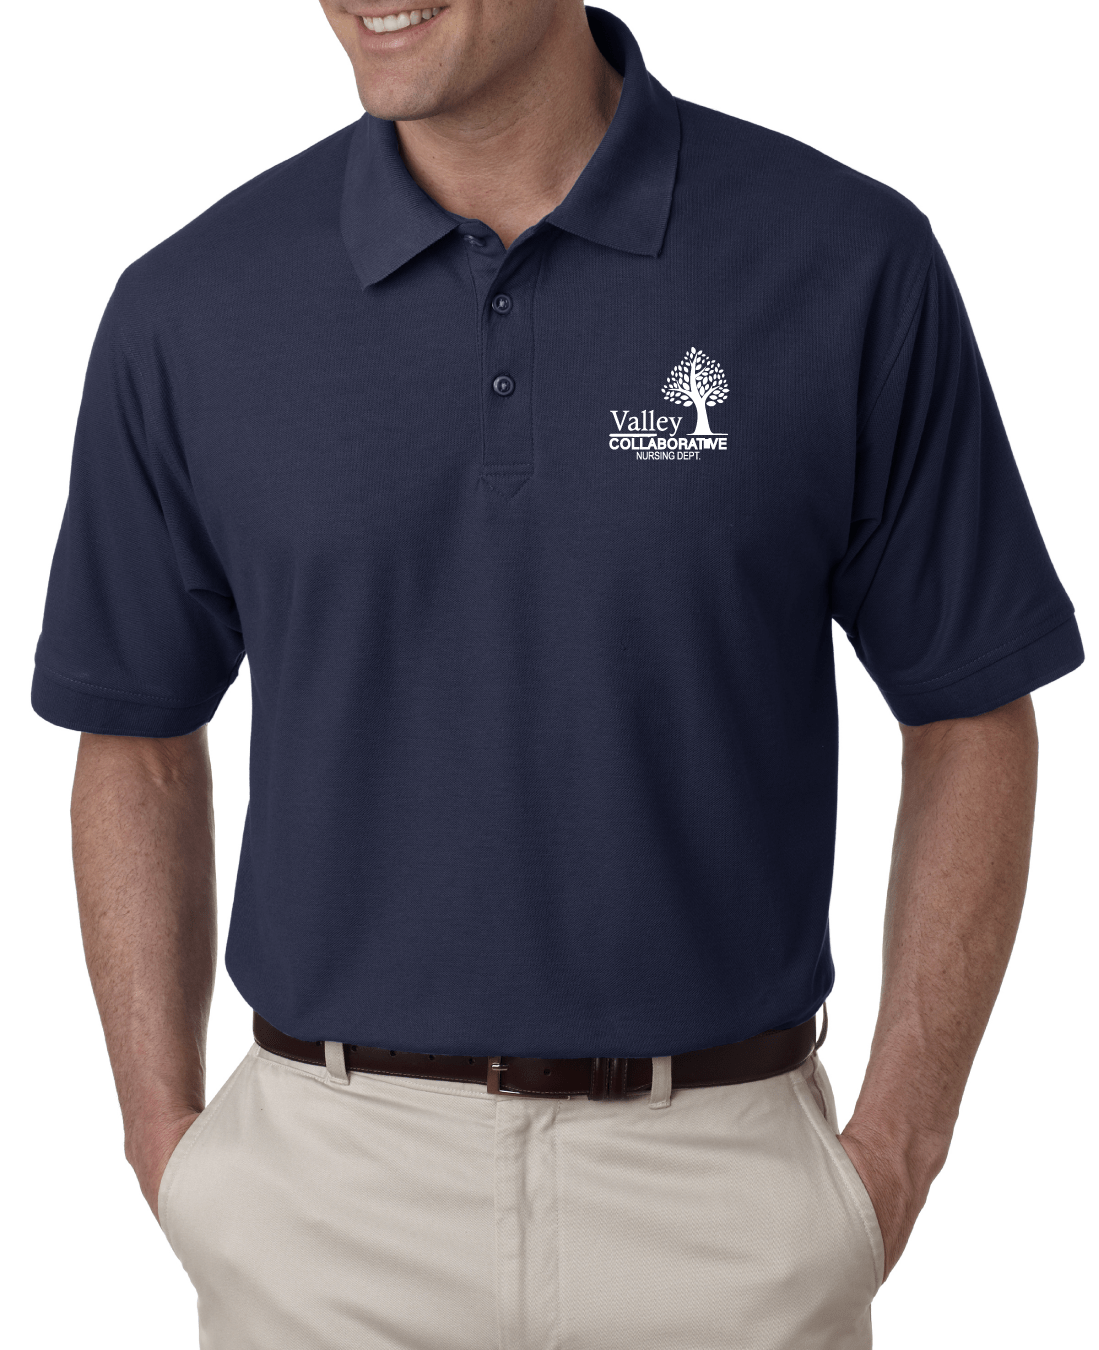 Valley Collaborative Embroidered Pique Polo Embroidery Unlimited